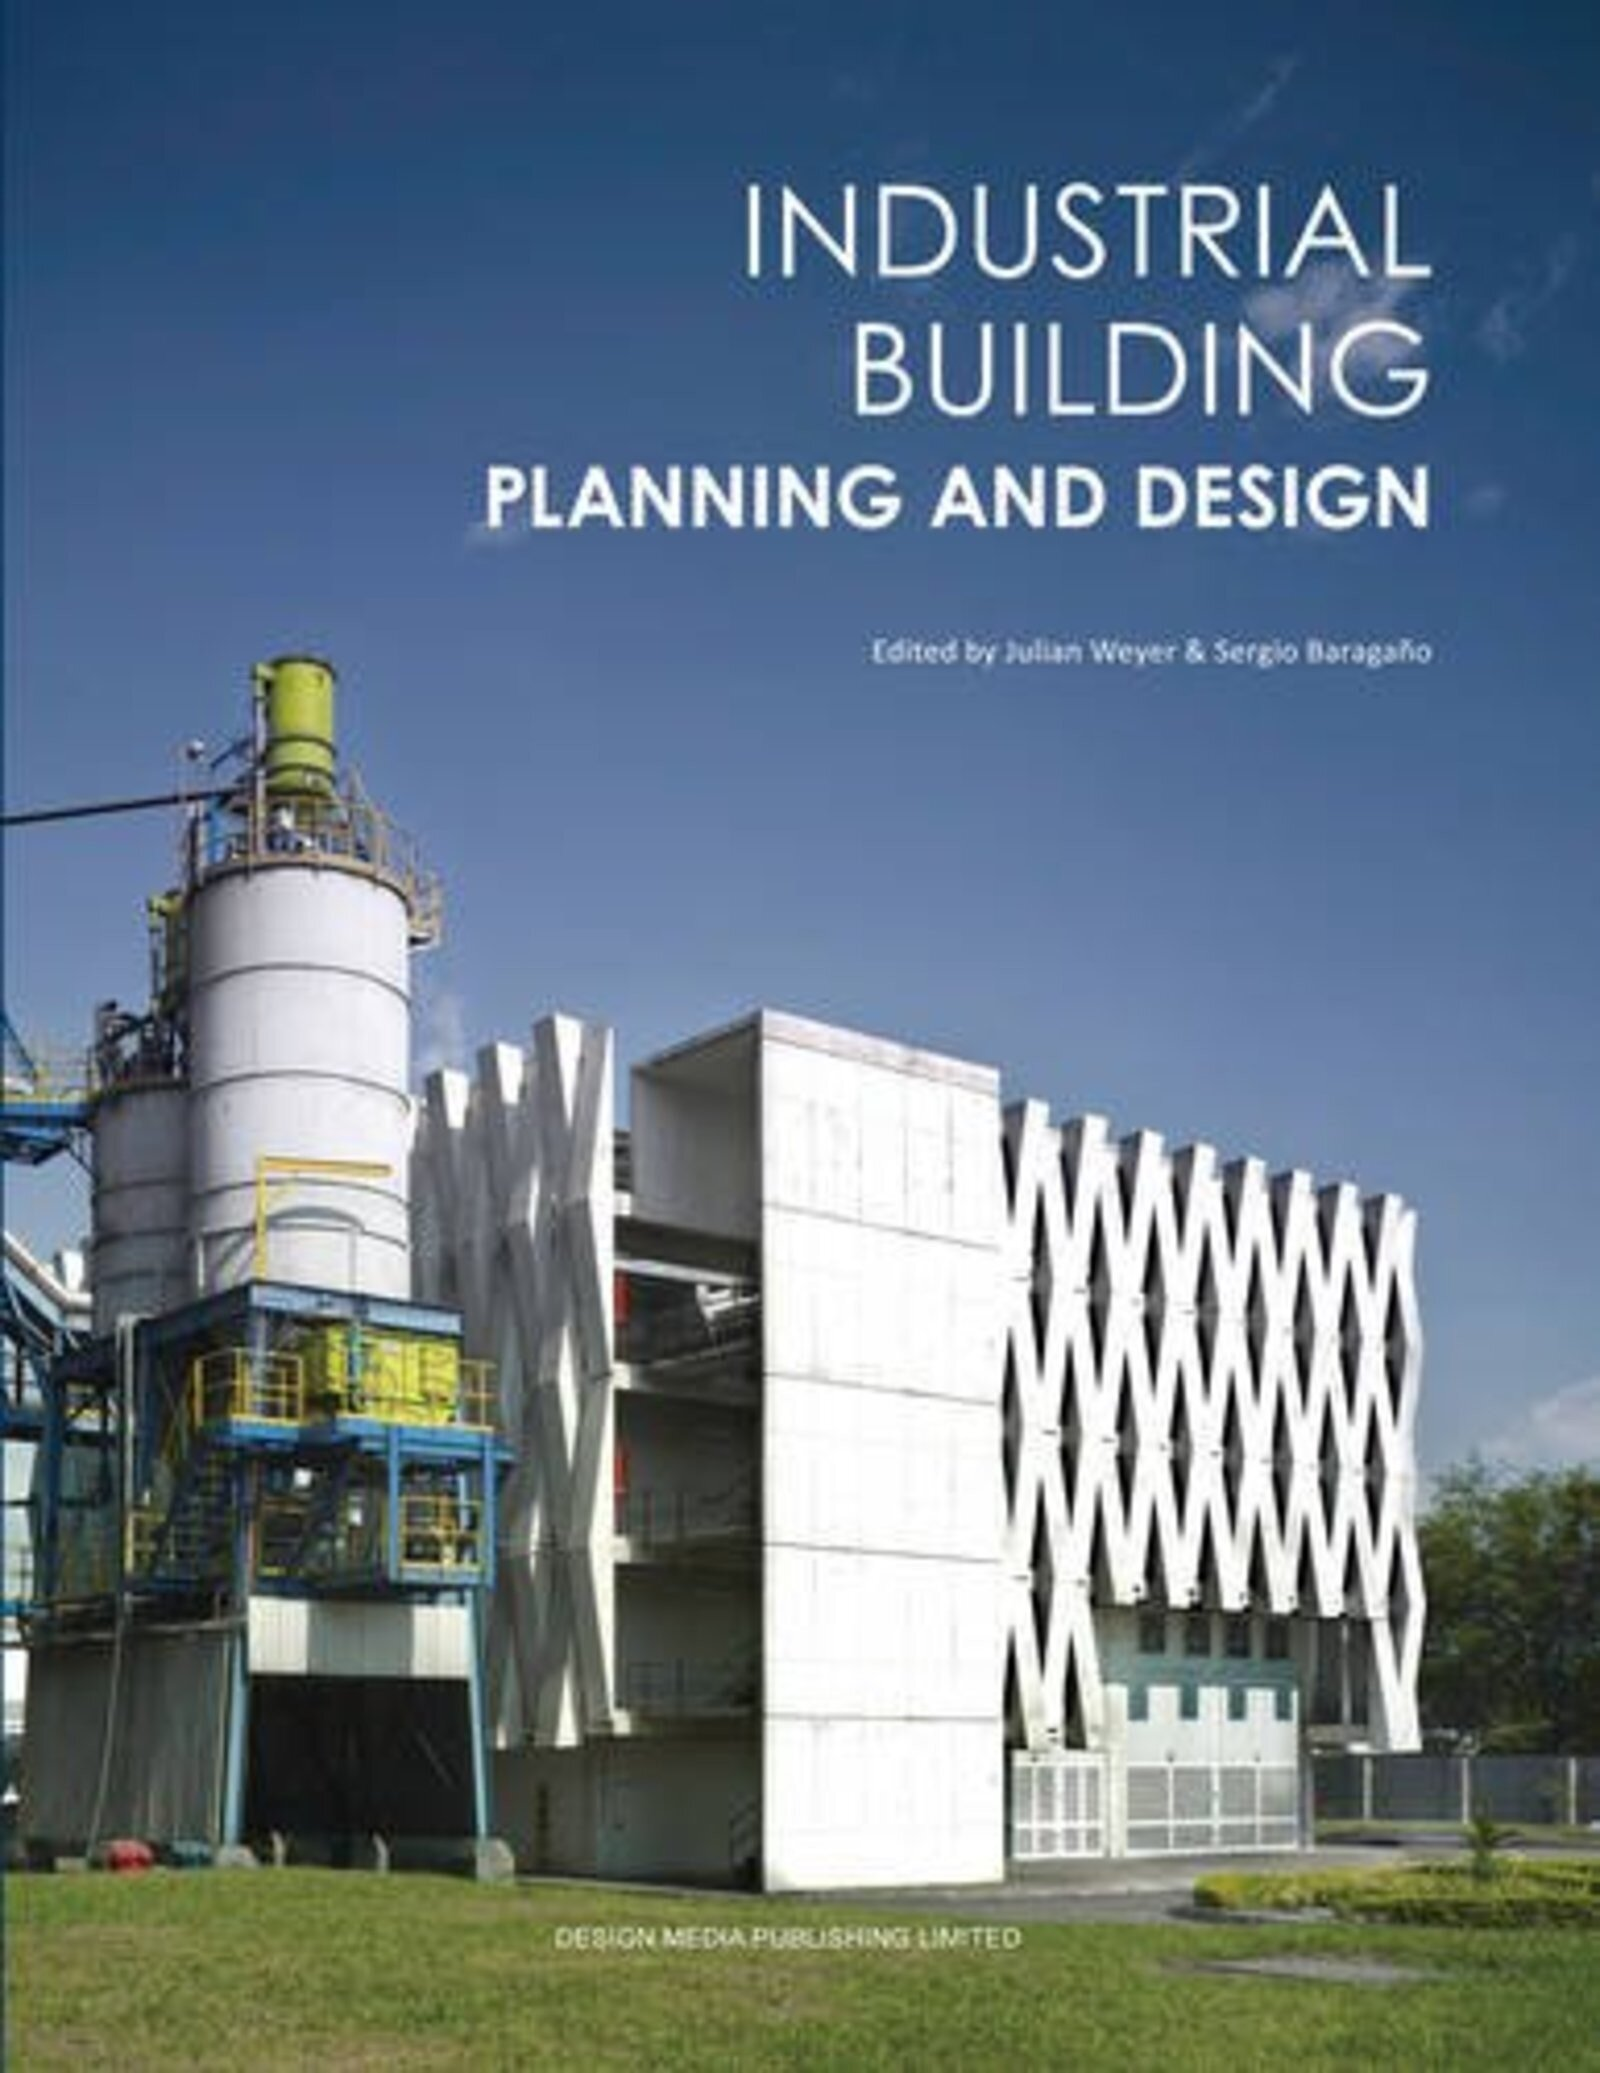 Industrial Building Planning and Design